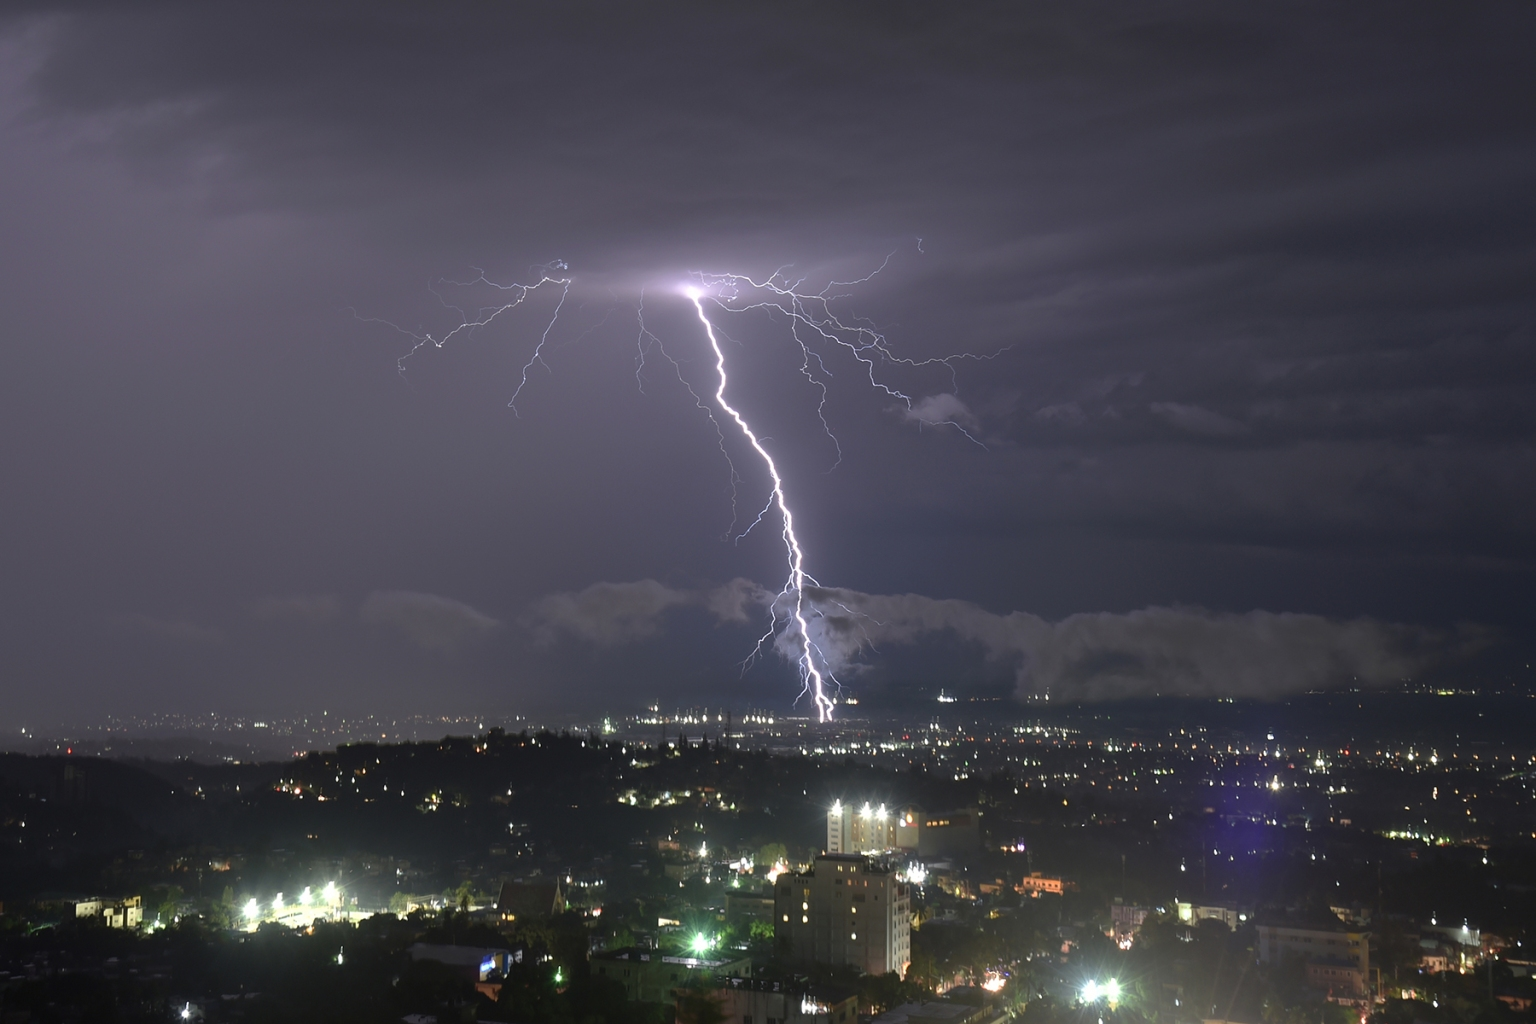 Lightning strikes over Port-au-Prince, Haiti, during a storm on Nov. 14. HECTOR RETAMAL/AFP/Getty Images